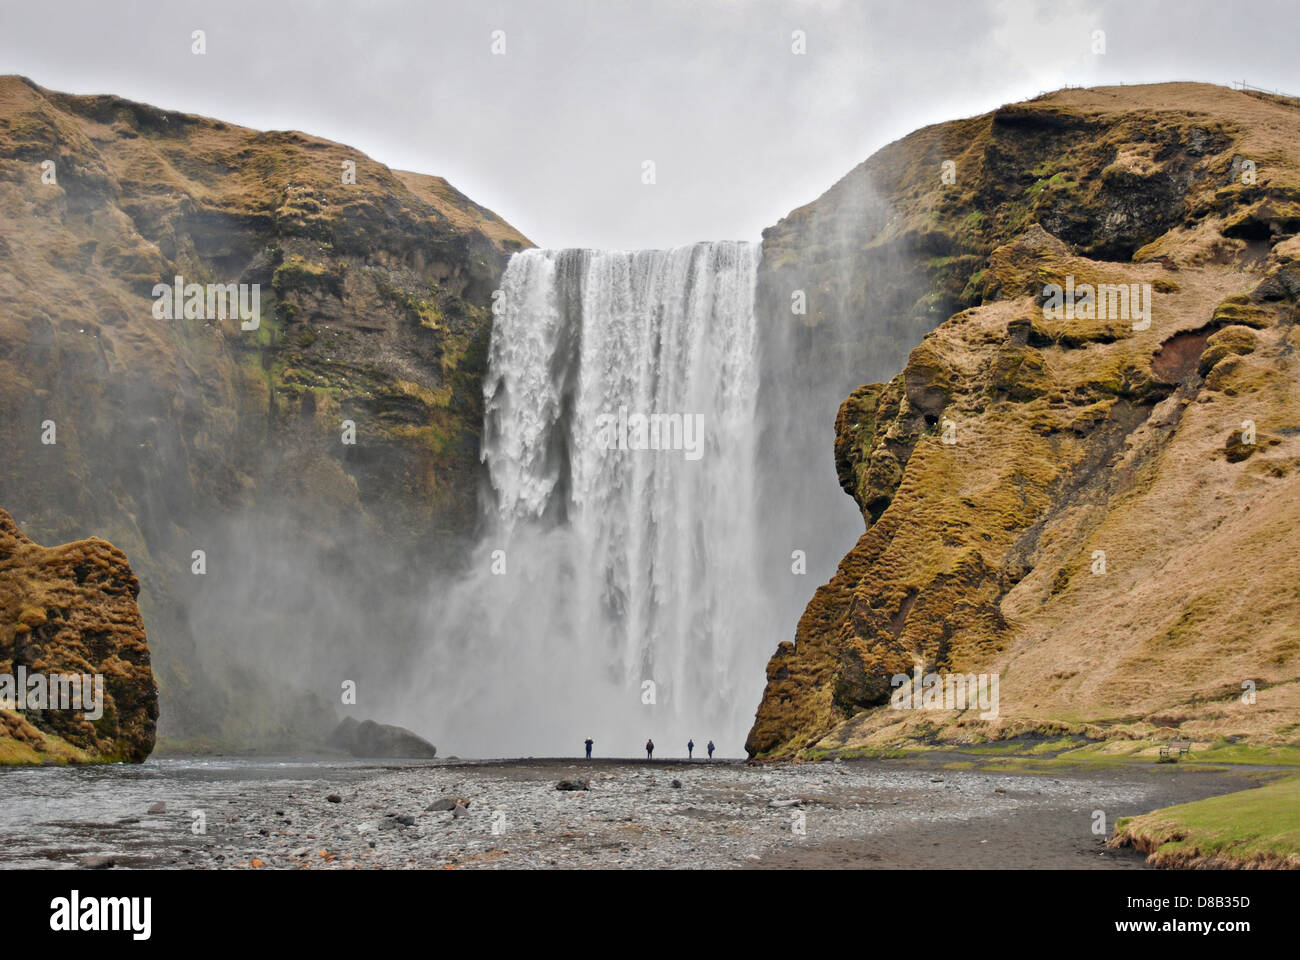 Skogafoss waterfall, South Iceland, Europe Stock Photo